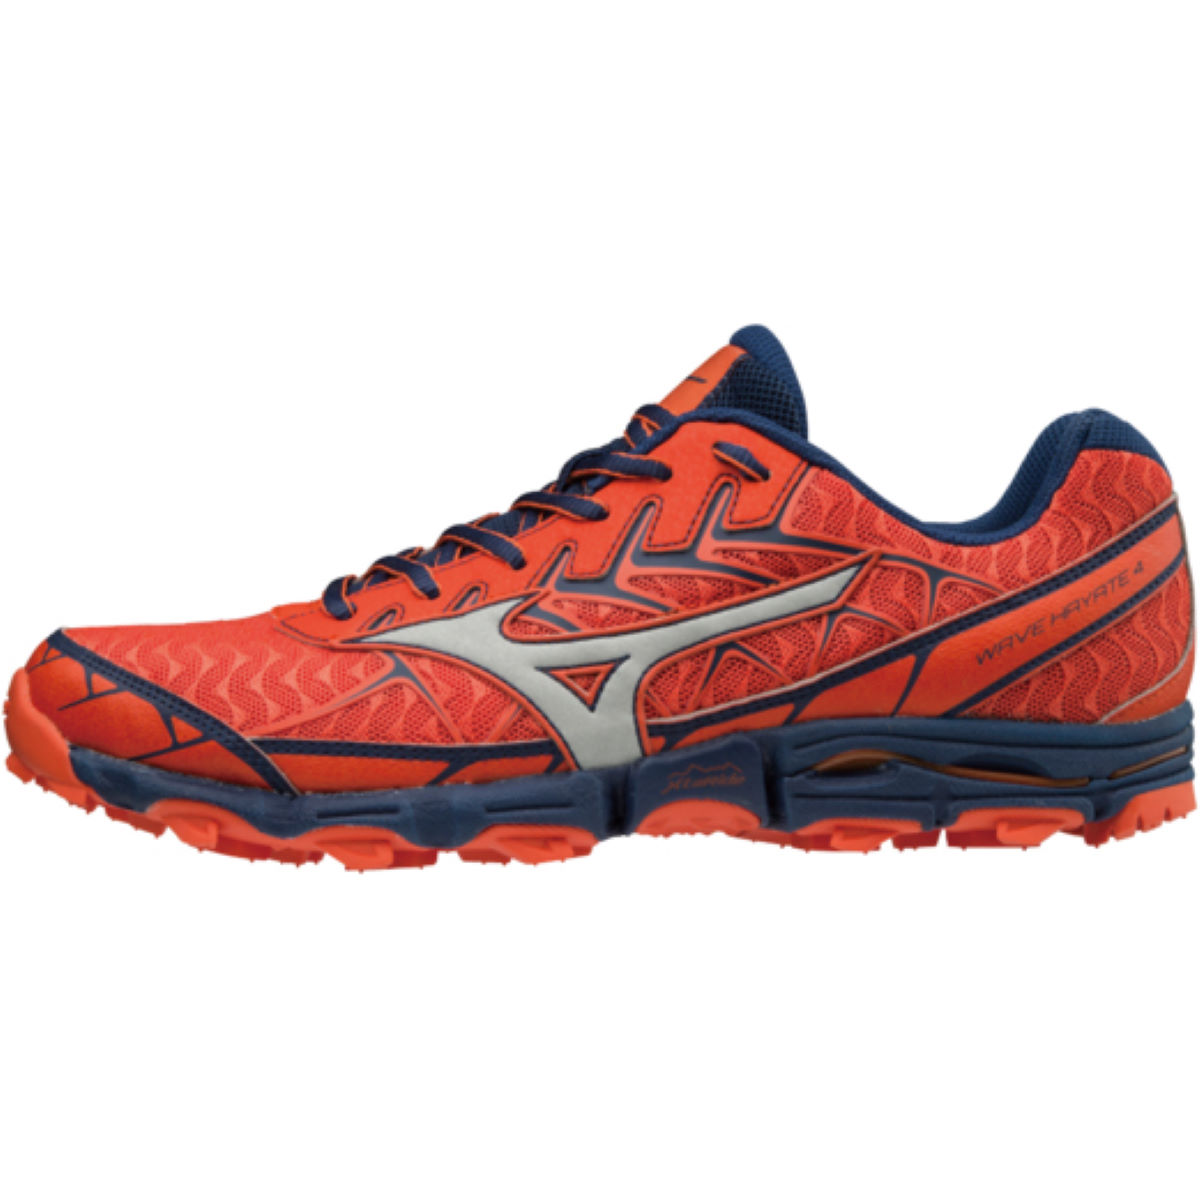 Chaussures Mizuno Wave Hayate 4 - UK 13 Cherry Tomato / Silv